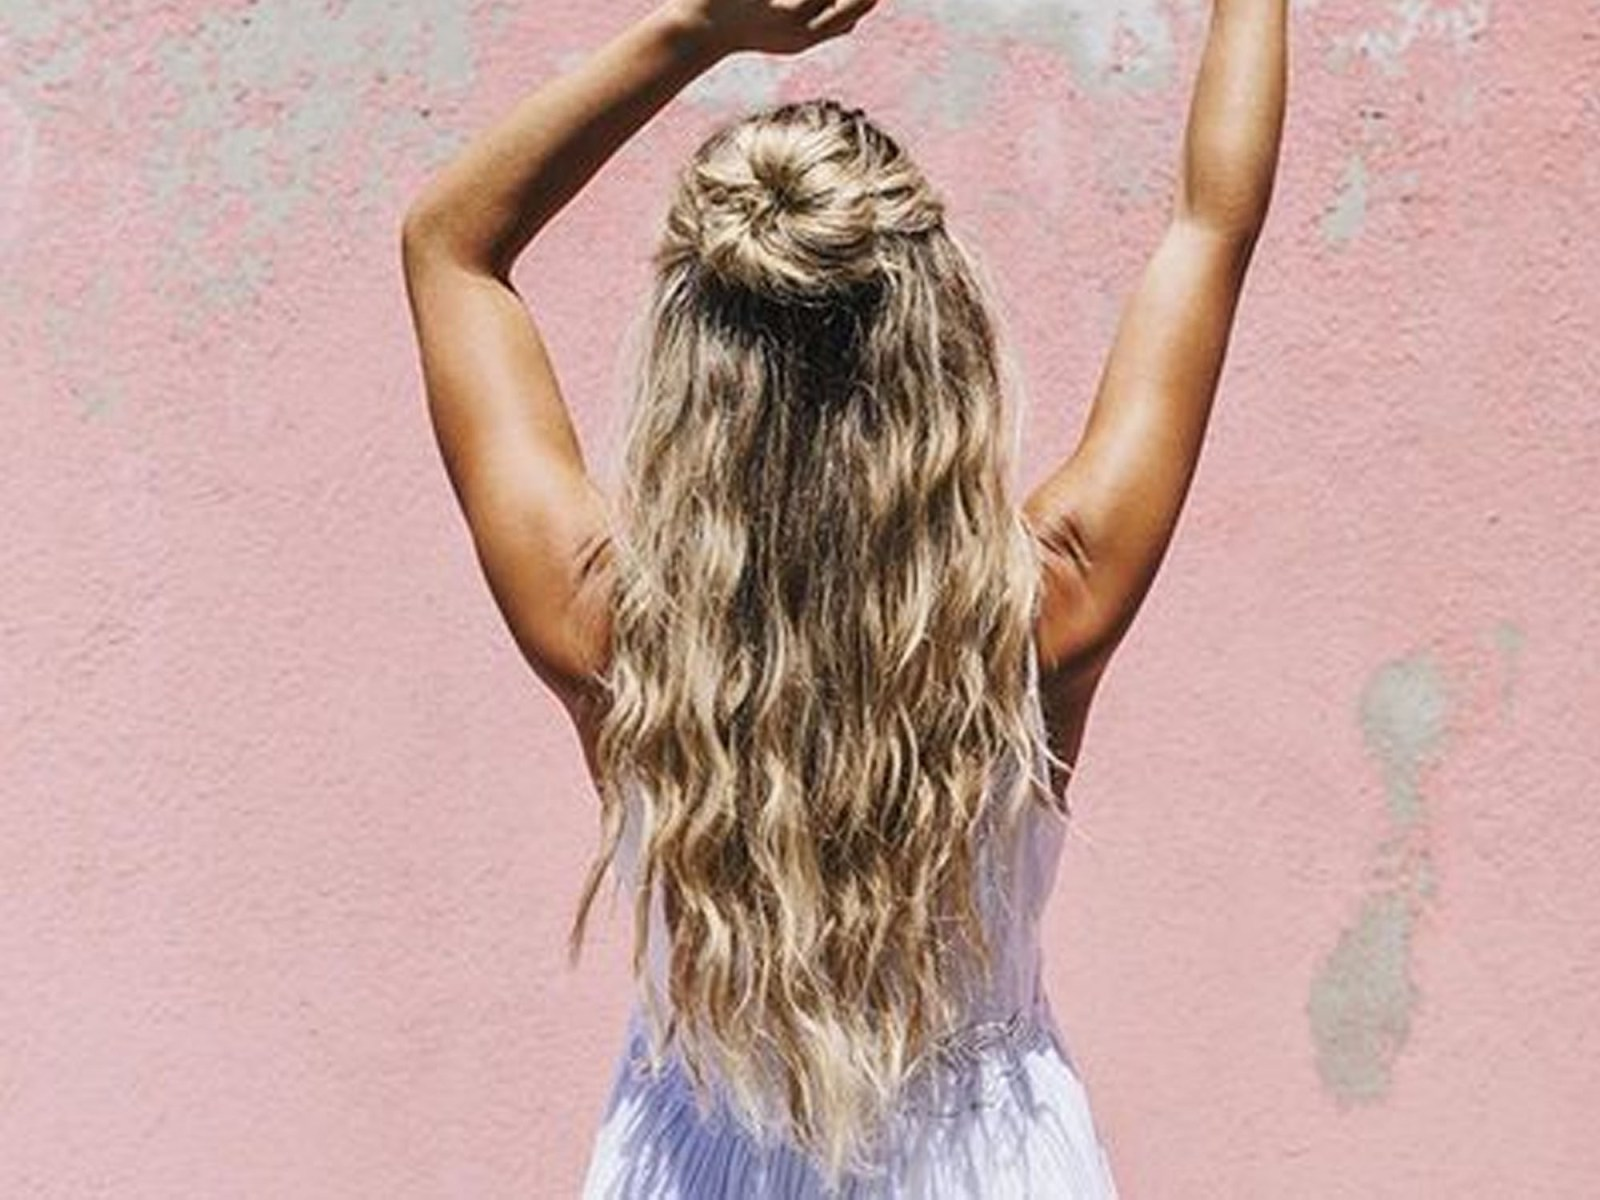 Get the best beachy waves for this summer season. Here are our favourite tips and tricks to beat the heat and get great waves.